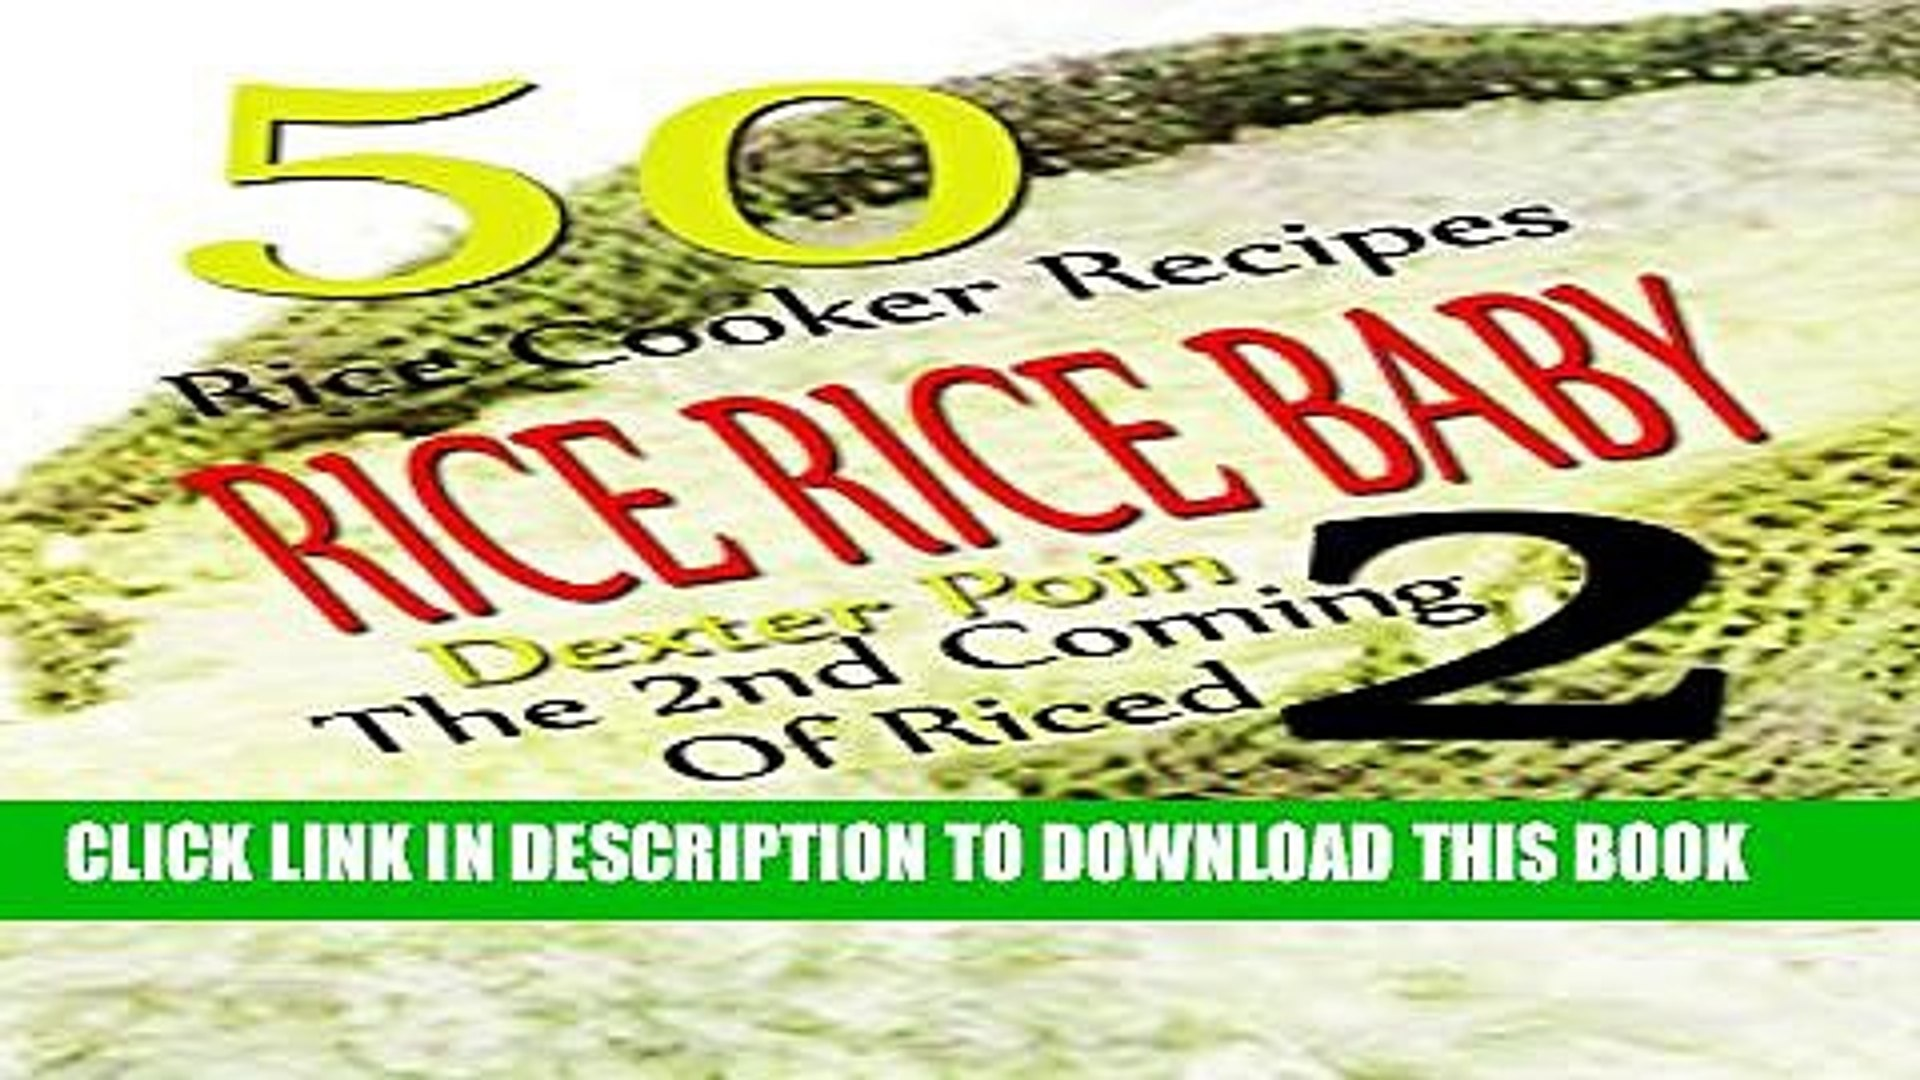 [PDF] RICE RICE BABY #2 - THE SECOND COMING OF RICED - 50 RICE COOKER RECIPES - (Kitchen Appliance